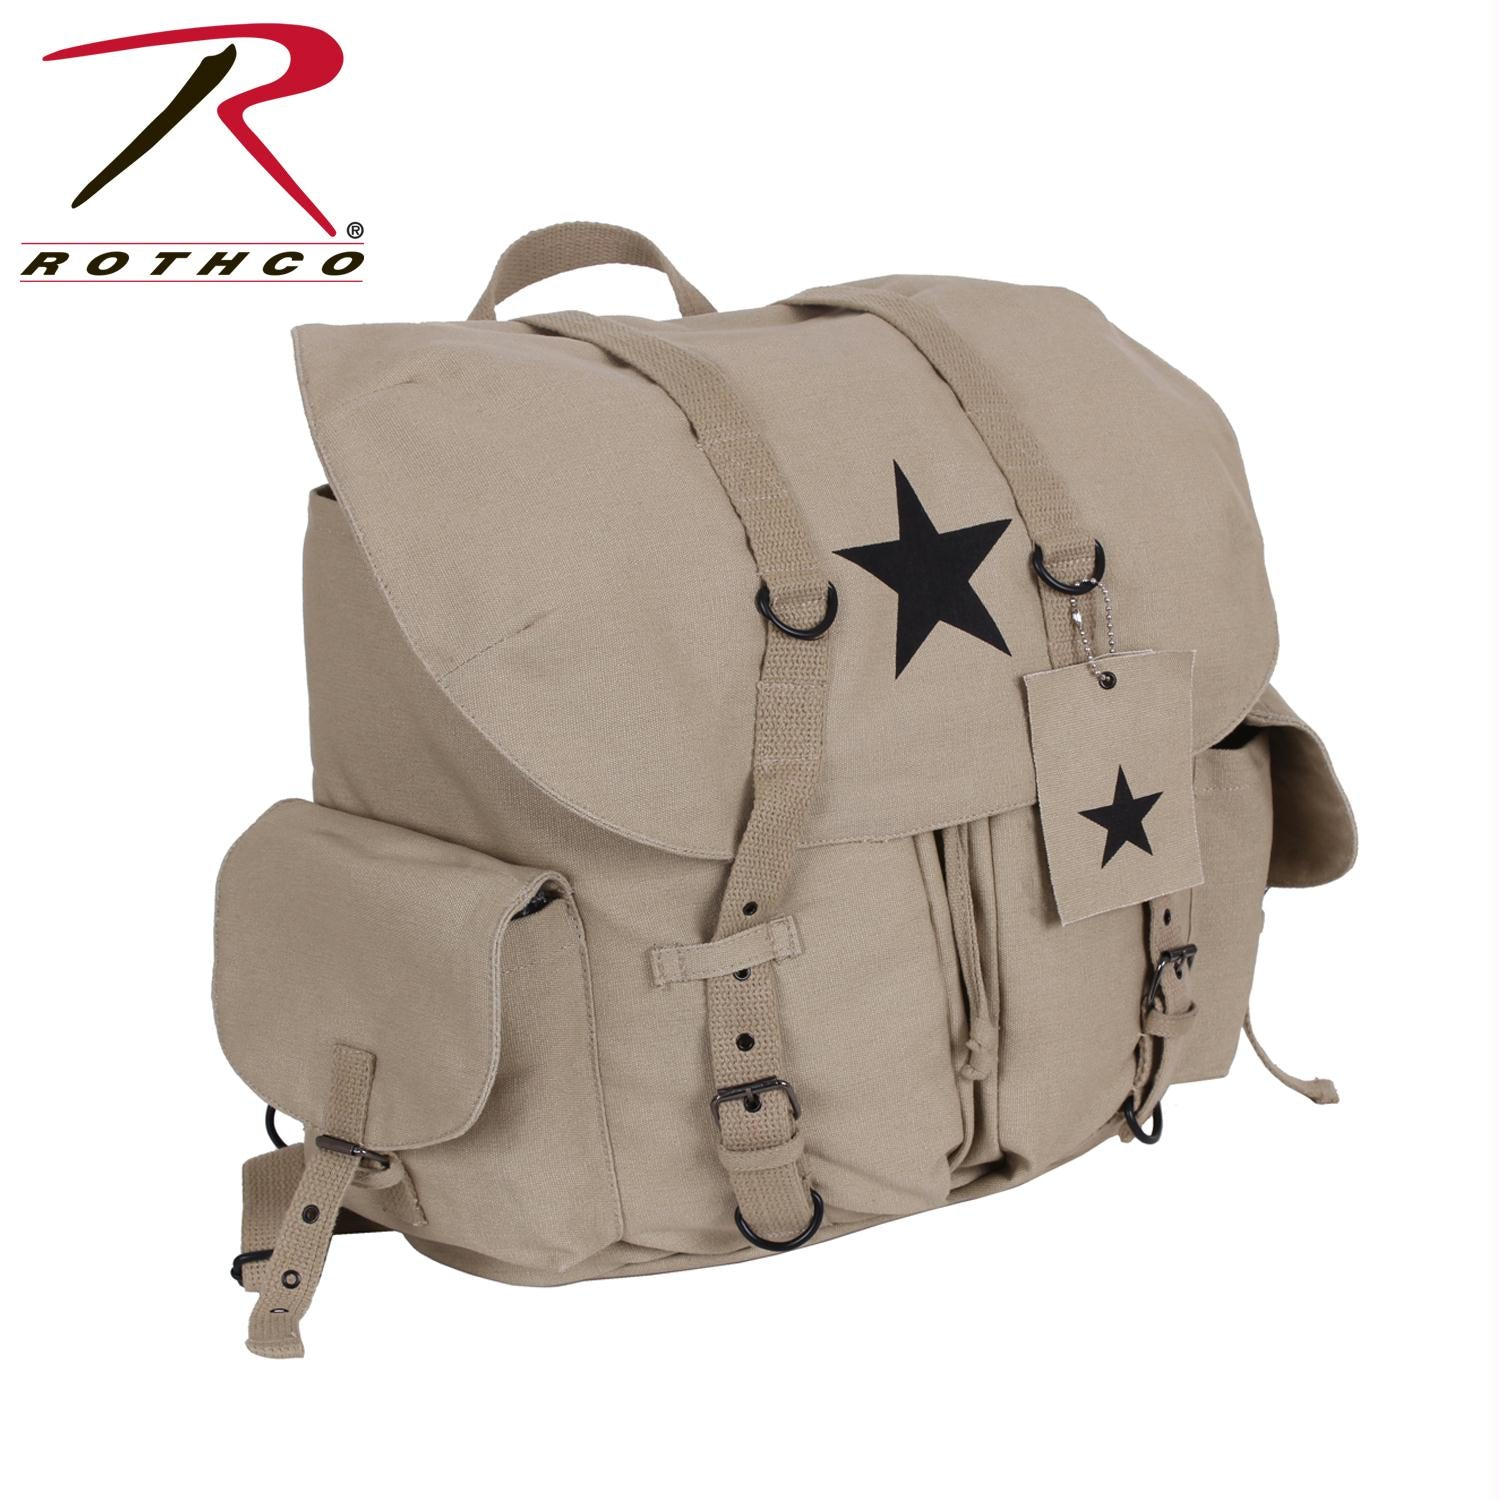 Rothco Vintage Weekender Canvas Backpack with Star - Khaki